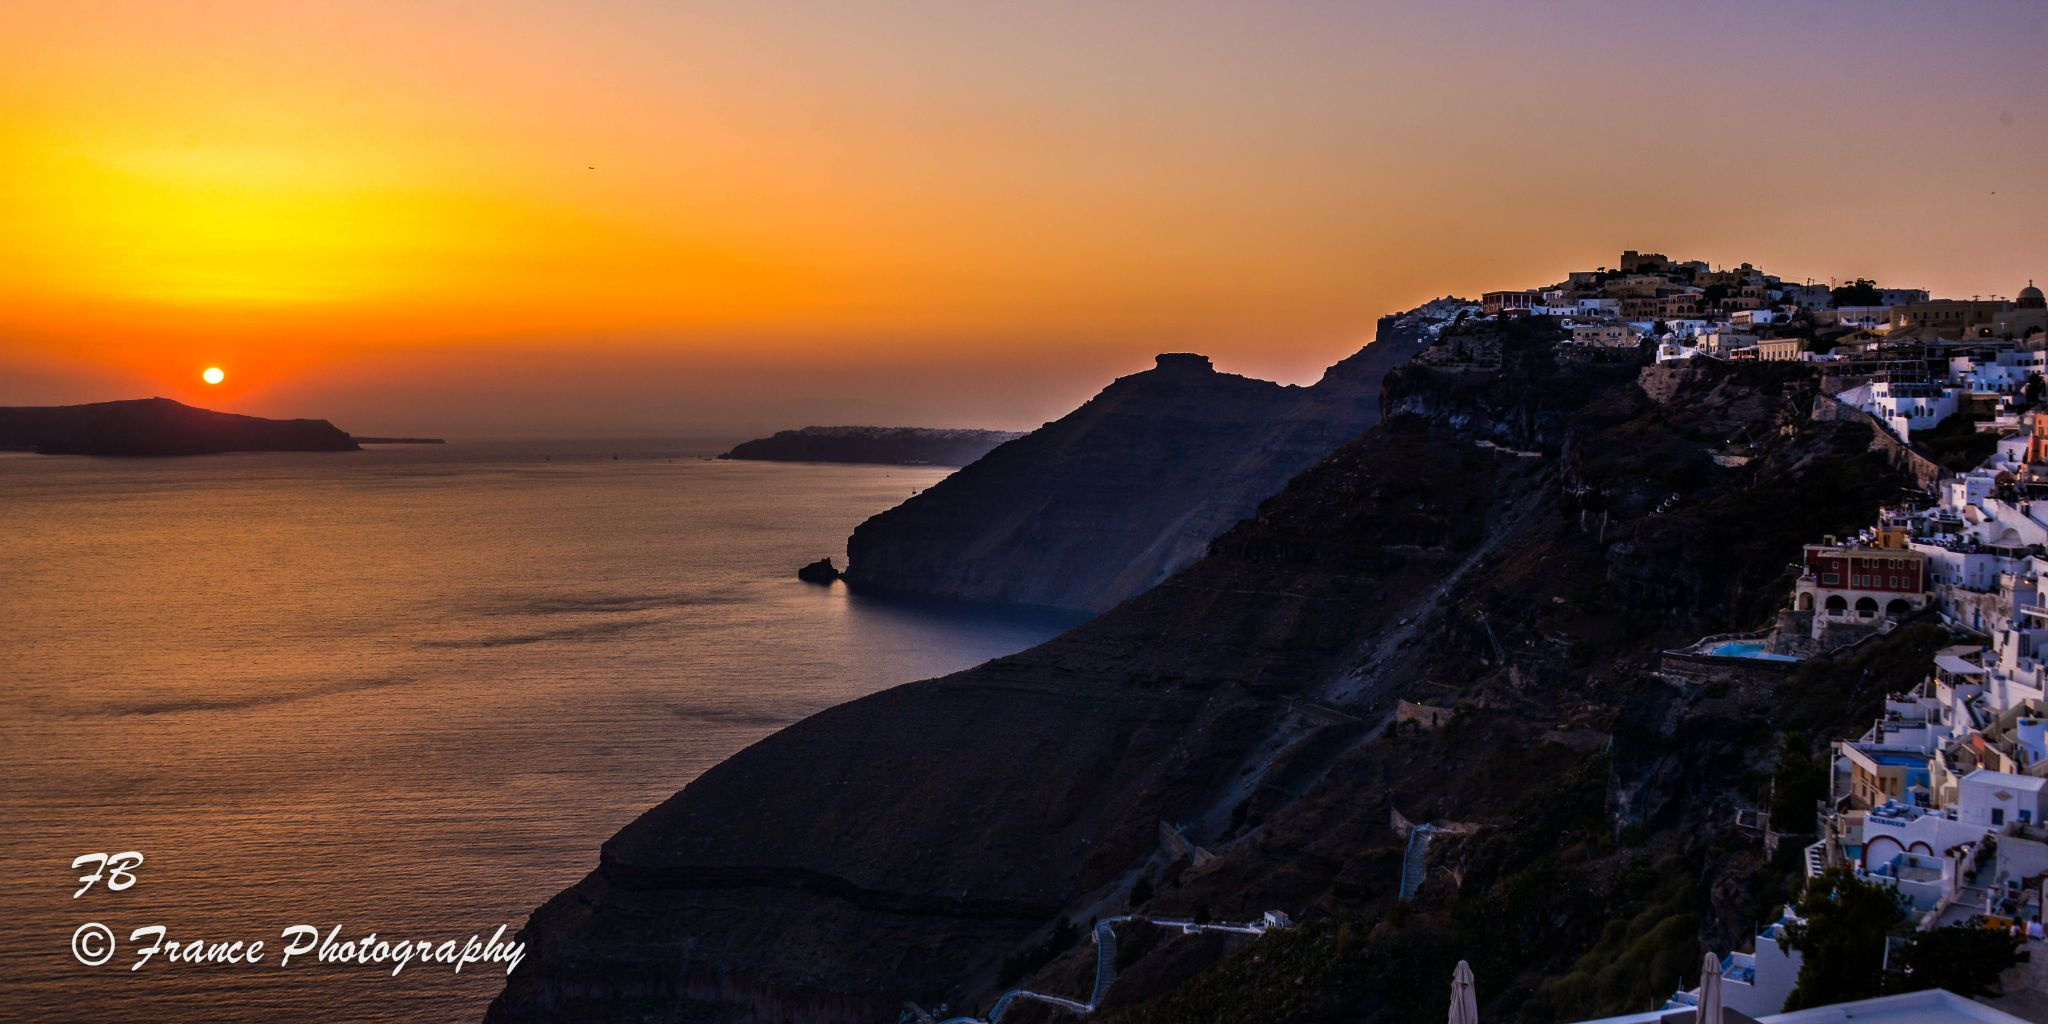 Sunset on the Caldeira by France Photography